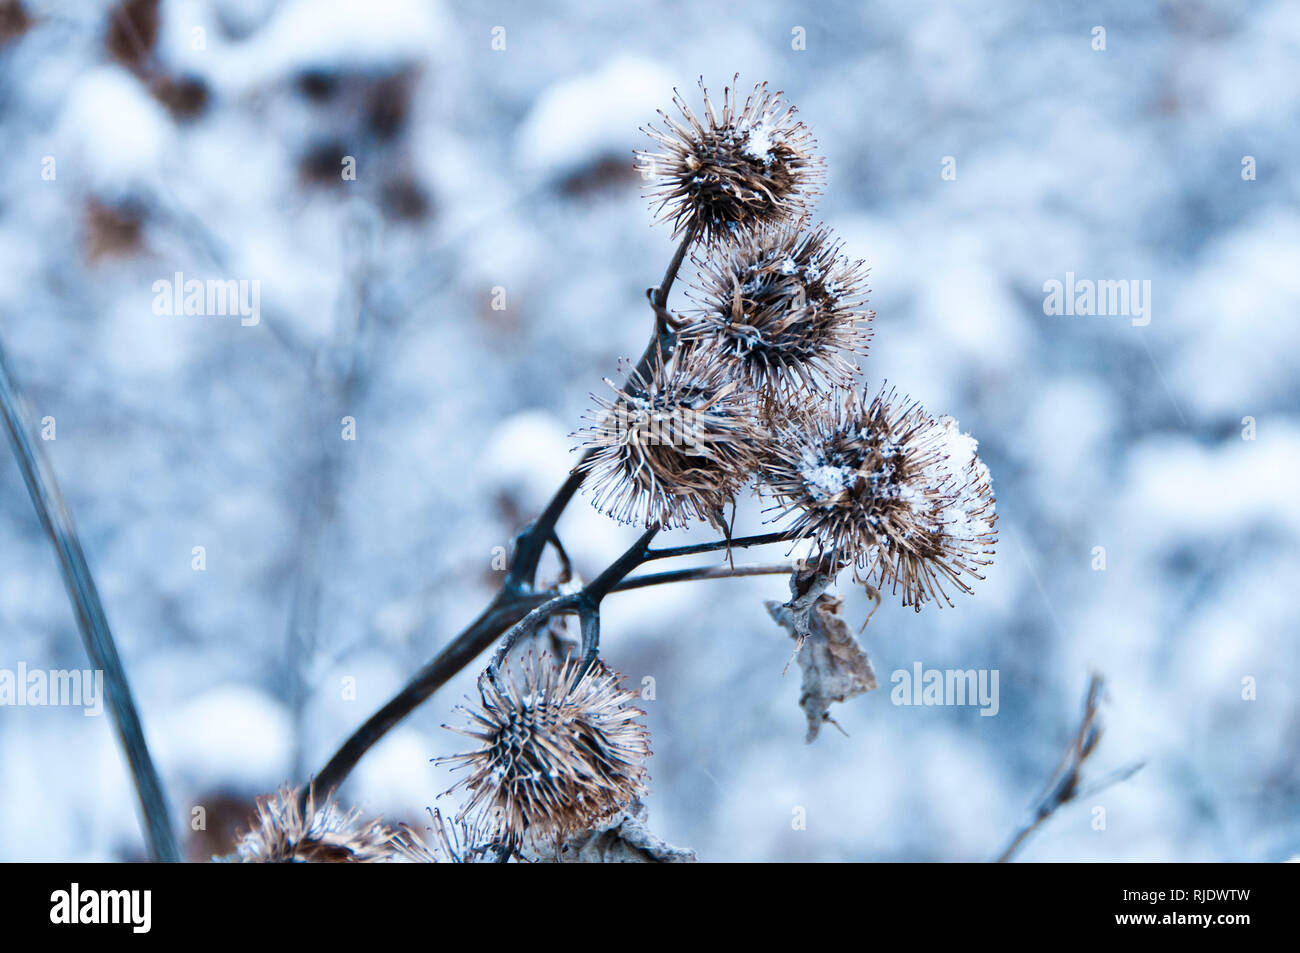 dry common Thistle plants covered with snow in winter - Stock Image